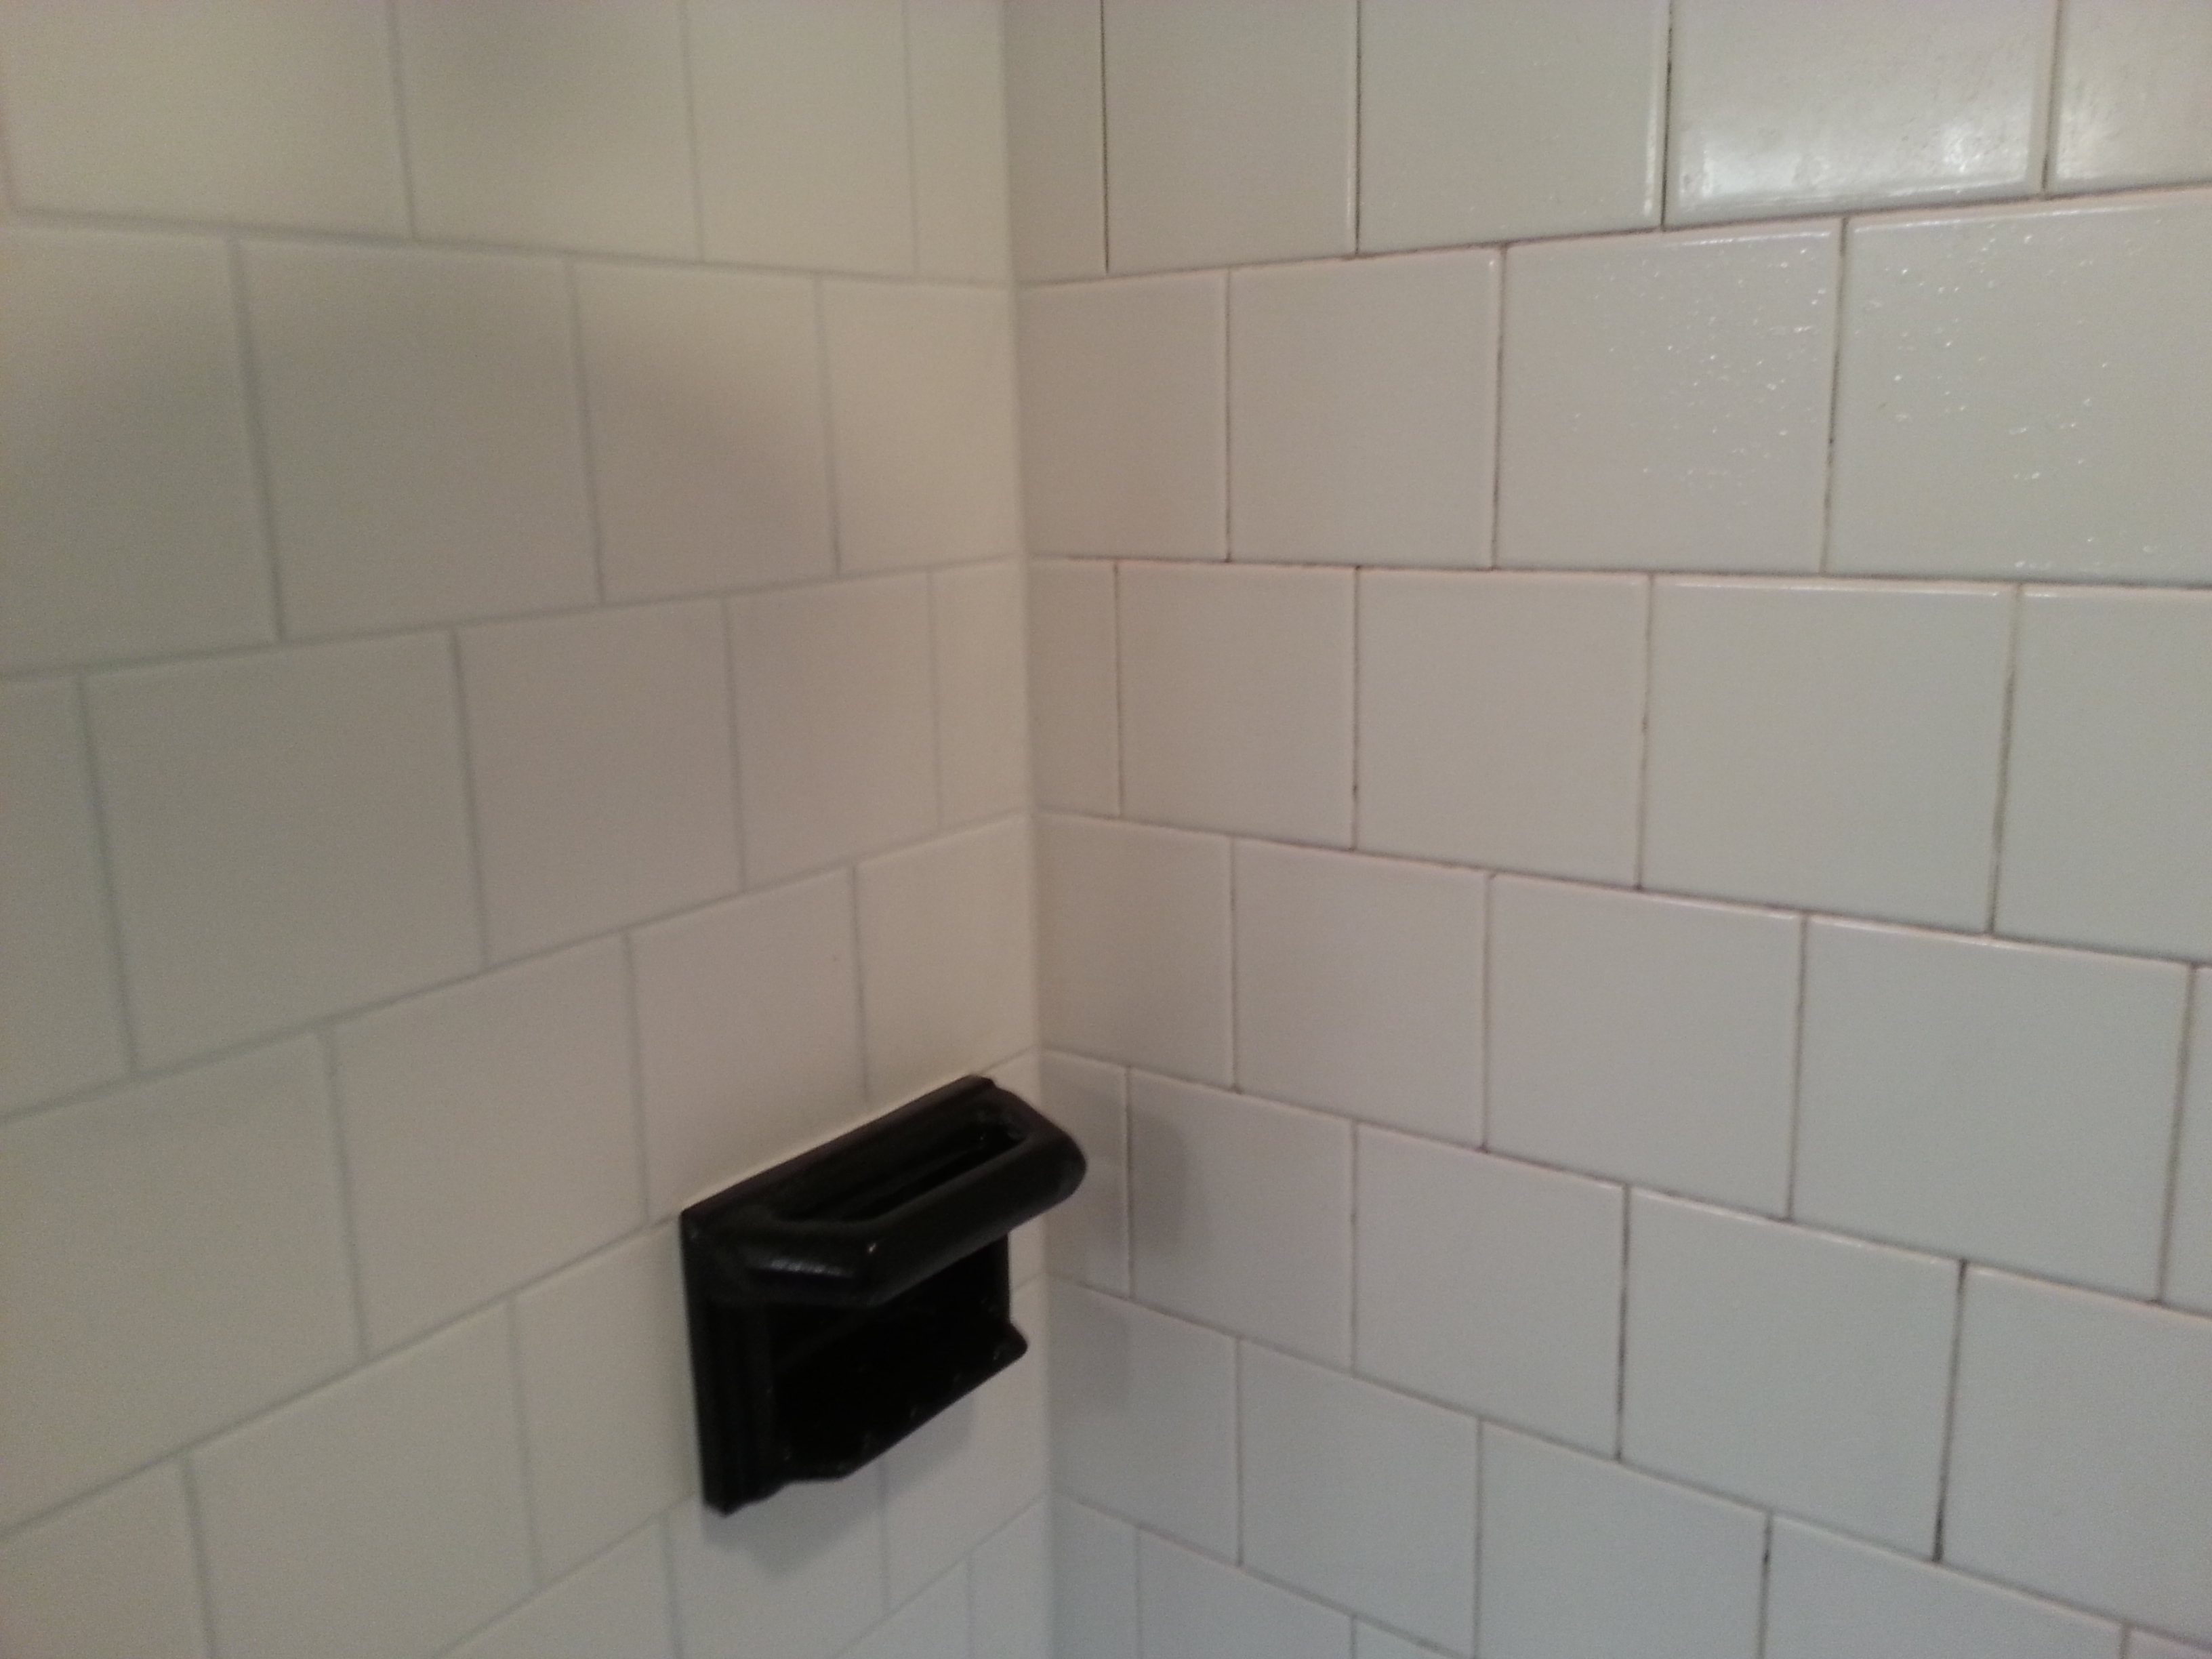 Bathroom Shower Tile Grout Repair